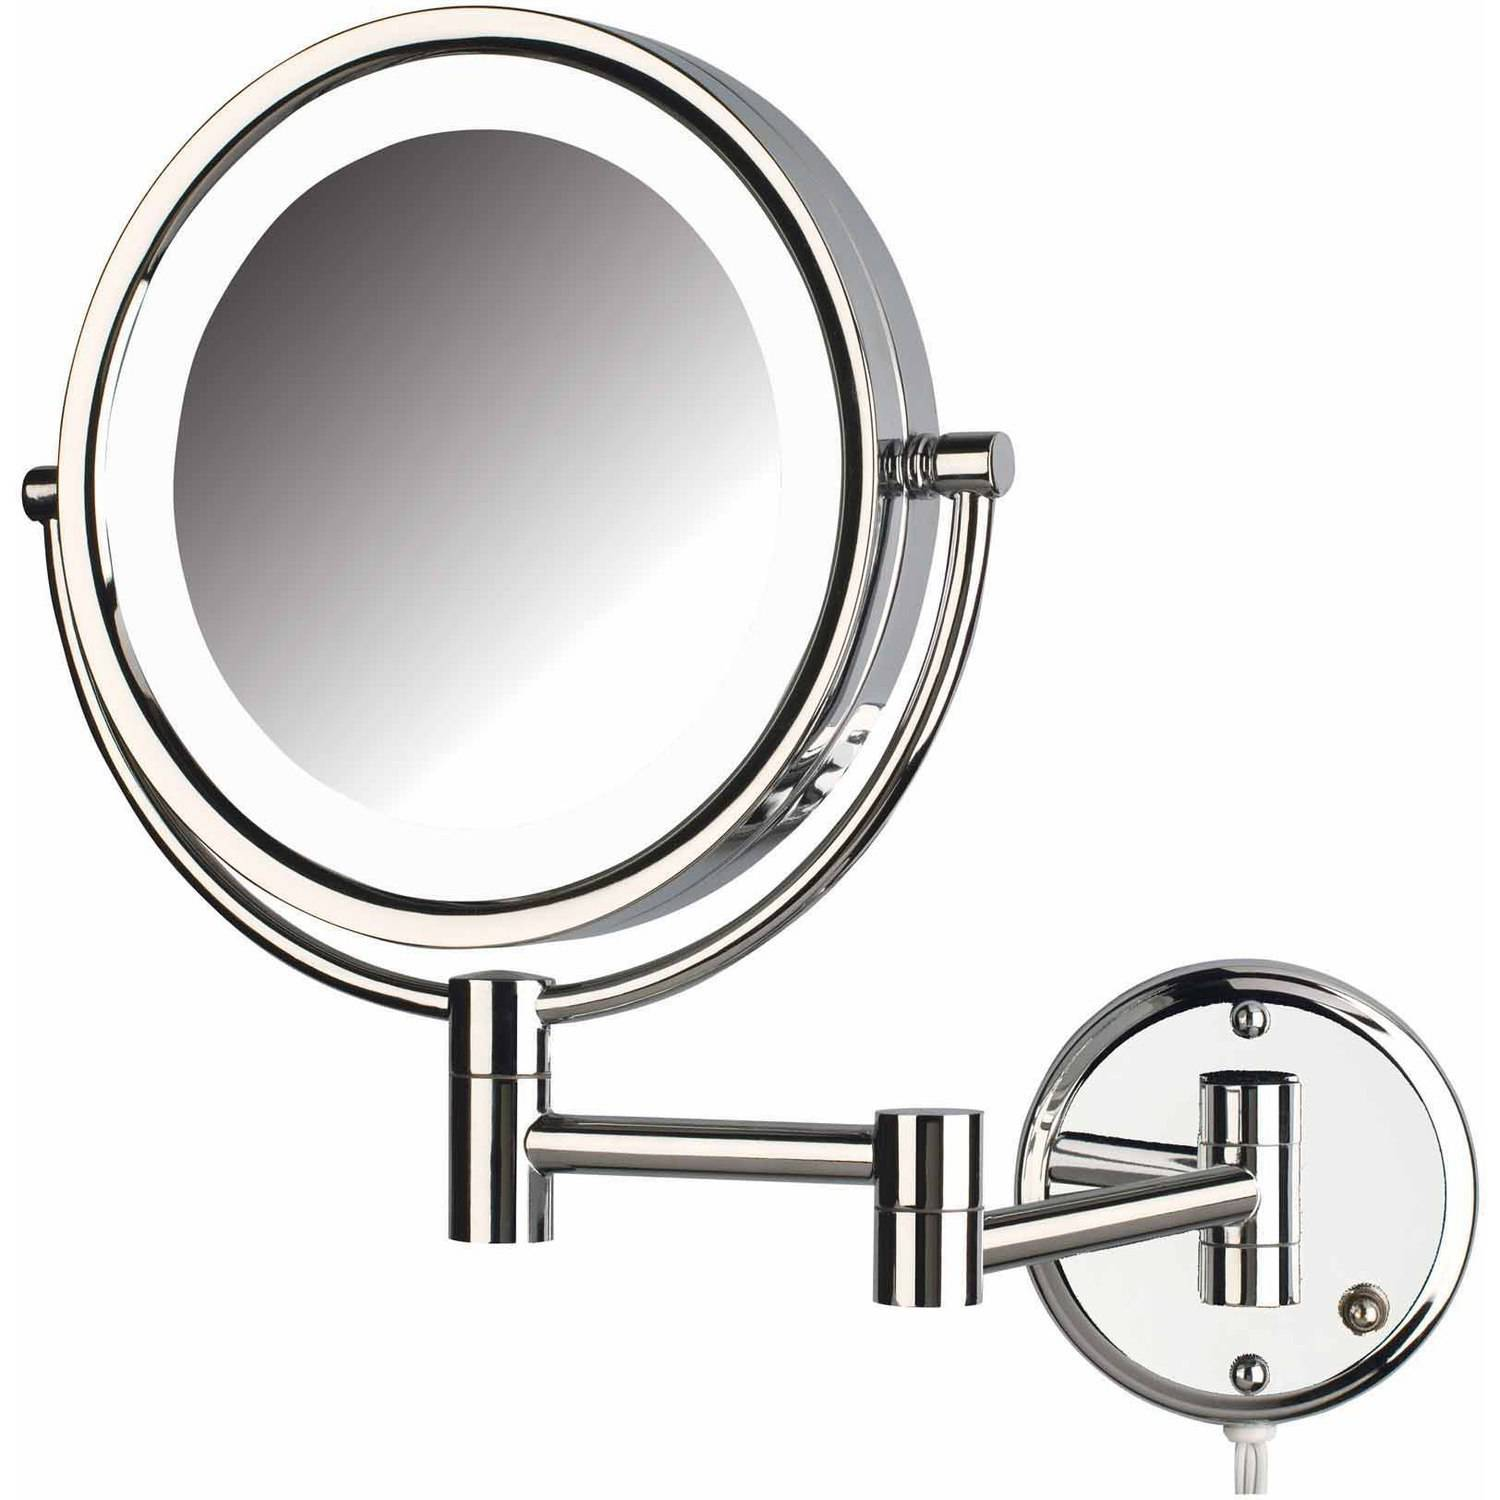 Jerdon Hl88cl 8 5 Led Lighted Wall Mount Makeup Mirror With 8x Magnification Chrome Finish Com